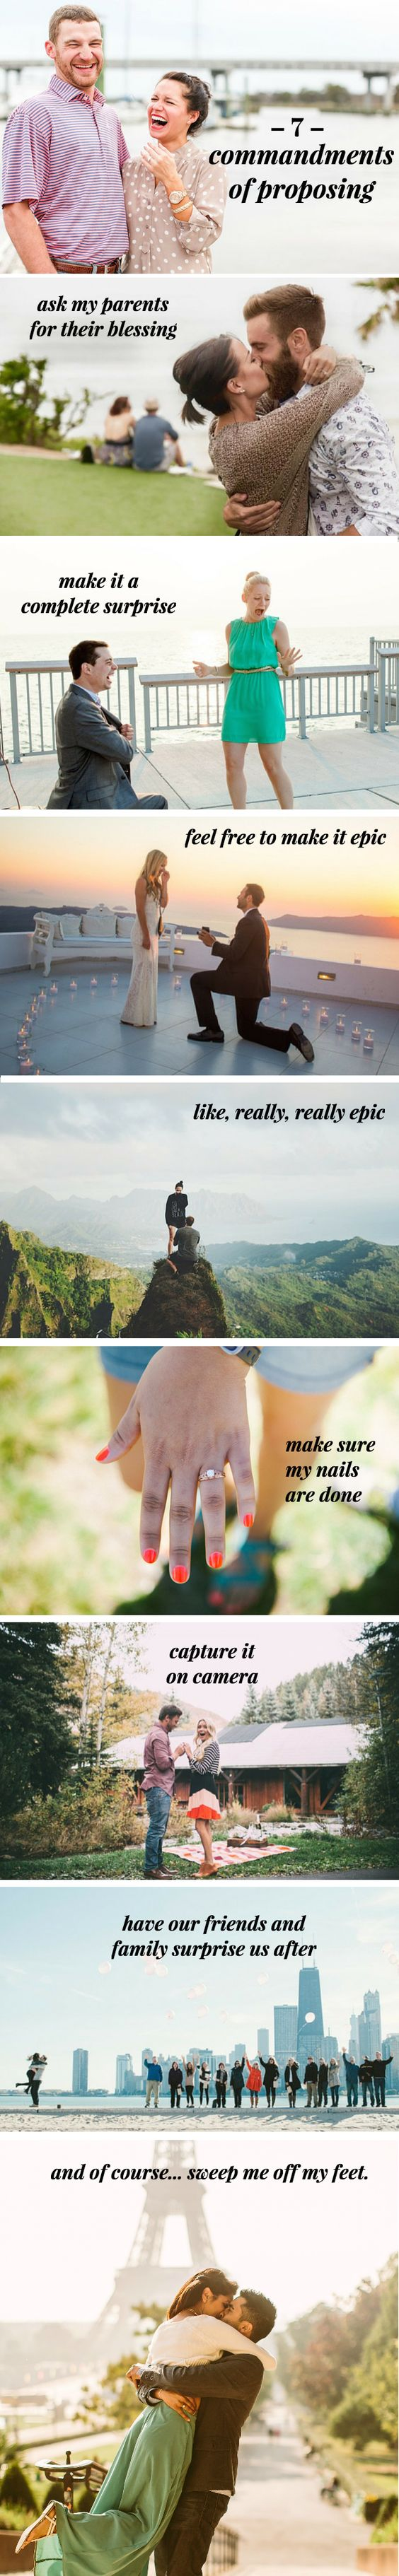 Proposals are the epic surprise. They're a declaration of love and an opportunity to be creative! They are meant to be fun and romantic. In the end of the day though, the best ones are about the couple and not the spectacle--Although epic isn't a bad thing ;)